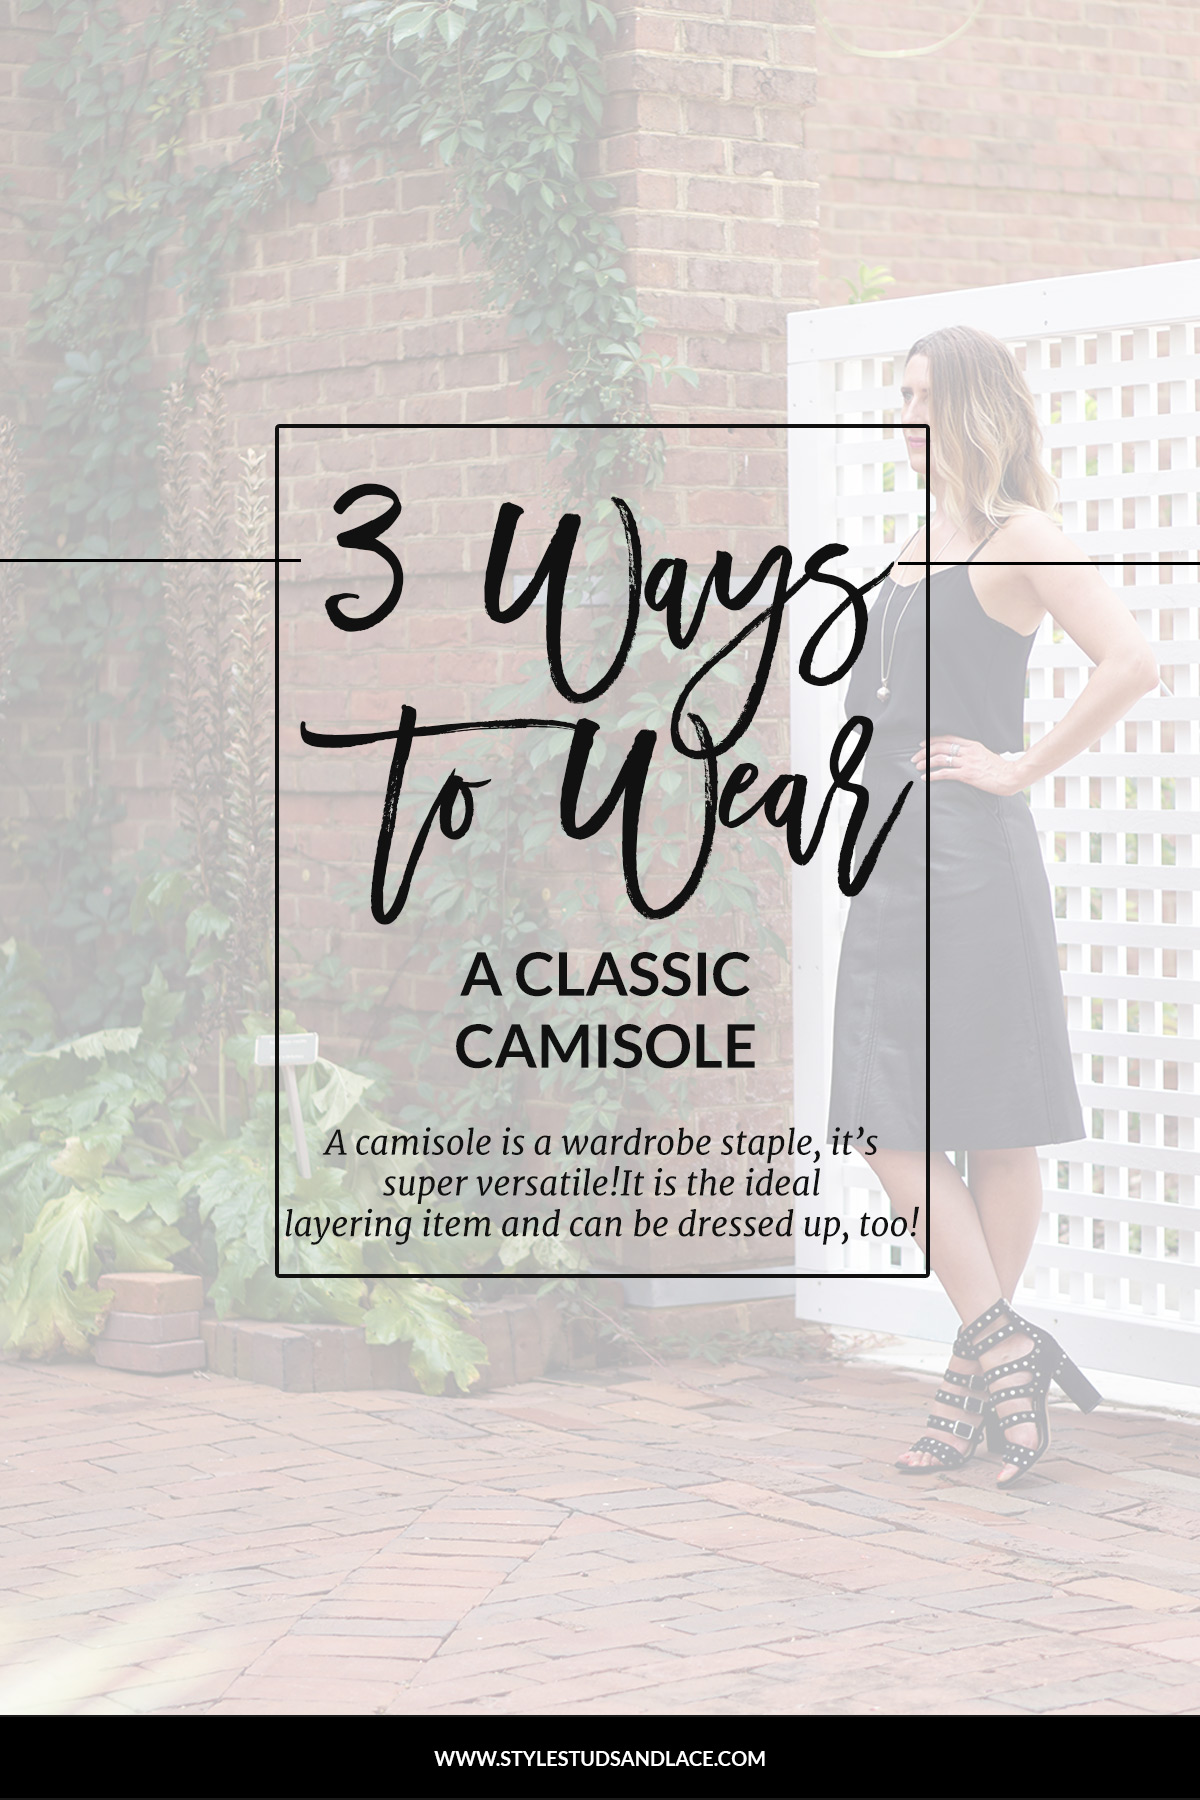 Three simple ways to breathe new life into your camisole | A vest is a wardrobe staple, it's versatile and can be worn to work, at the weekend, on a night out and is perfect layering.